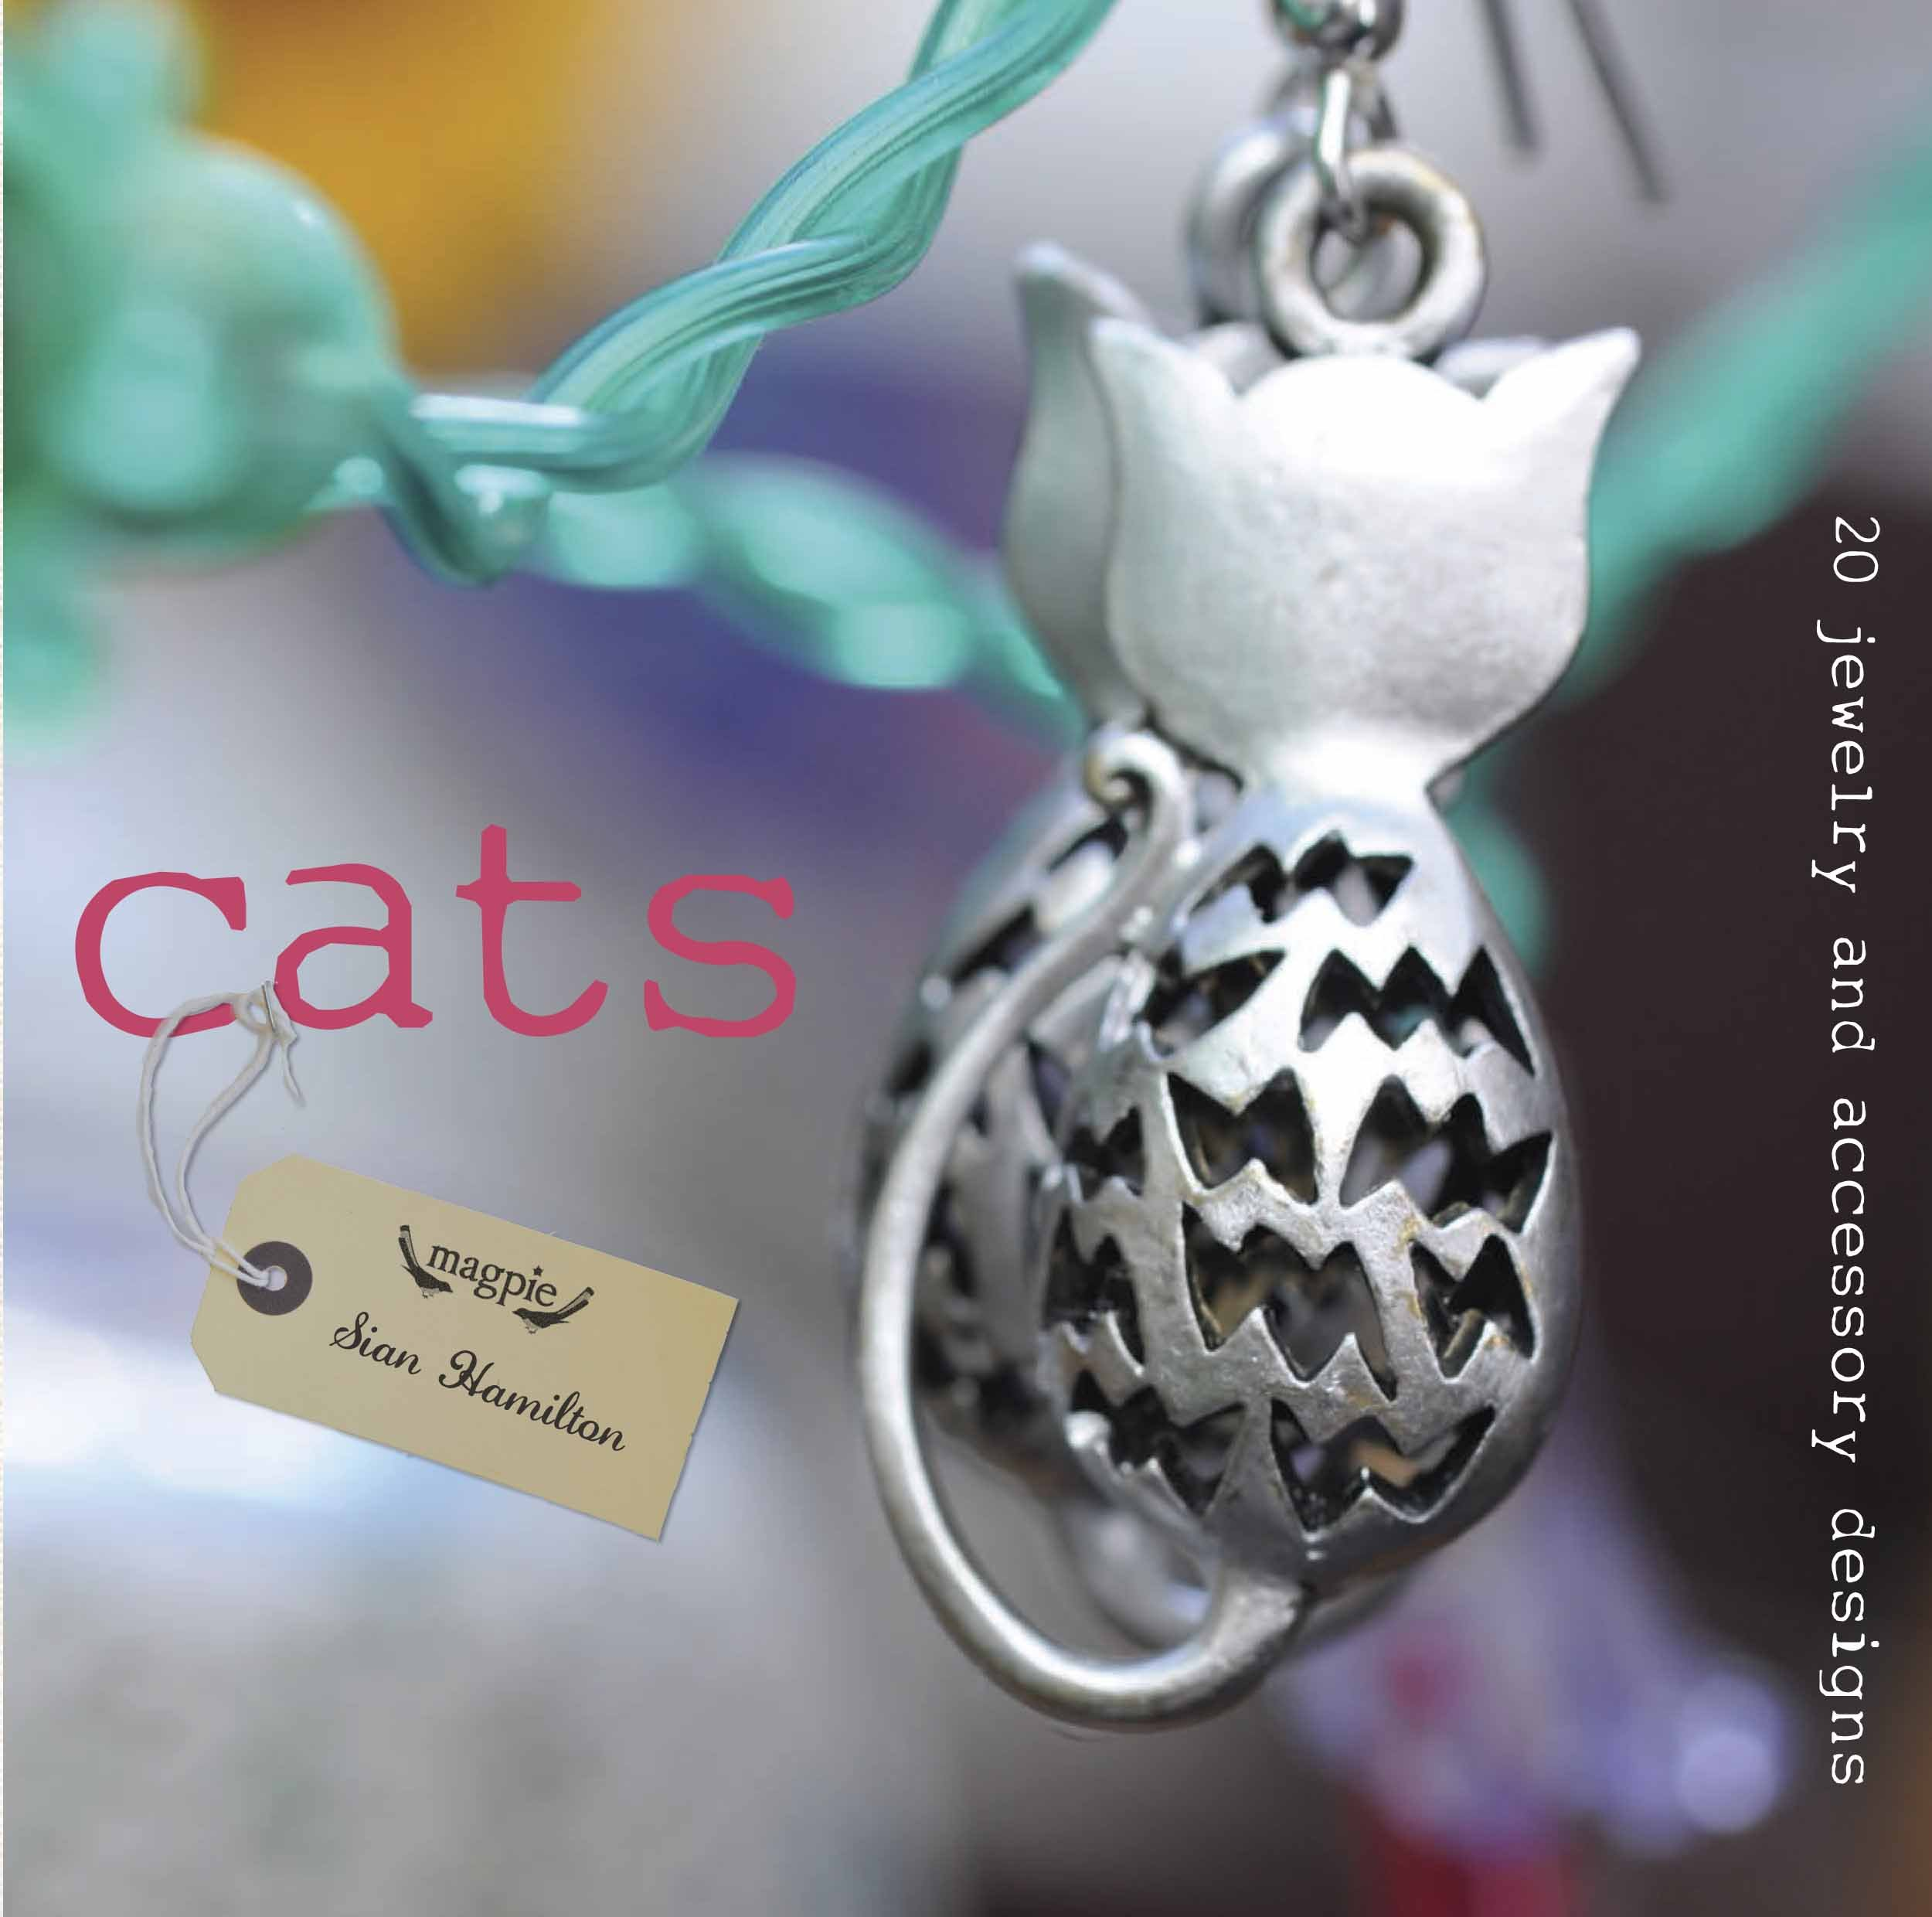 Cats: 20 Jewelry and Accessory Designs (Magpie)